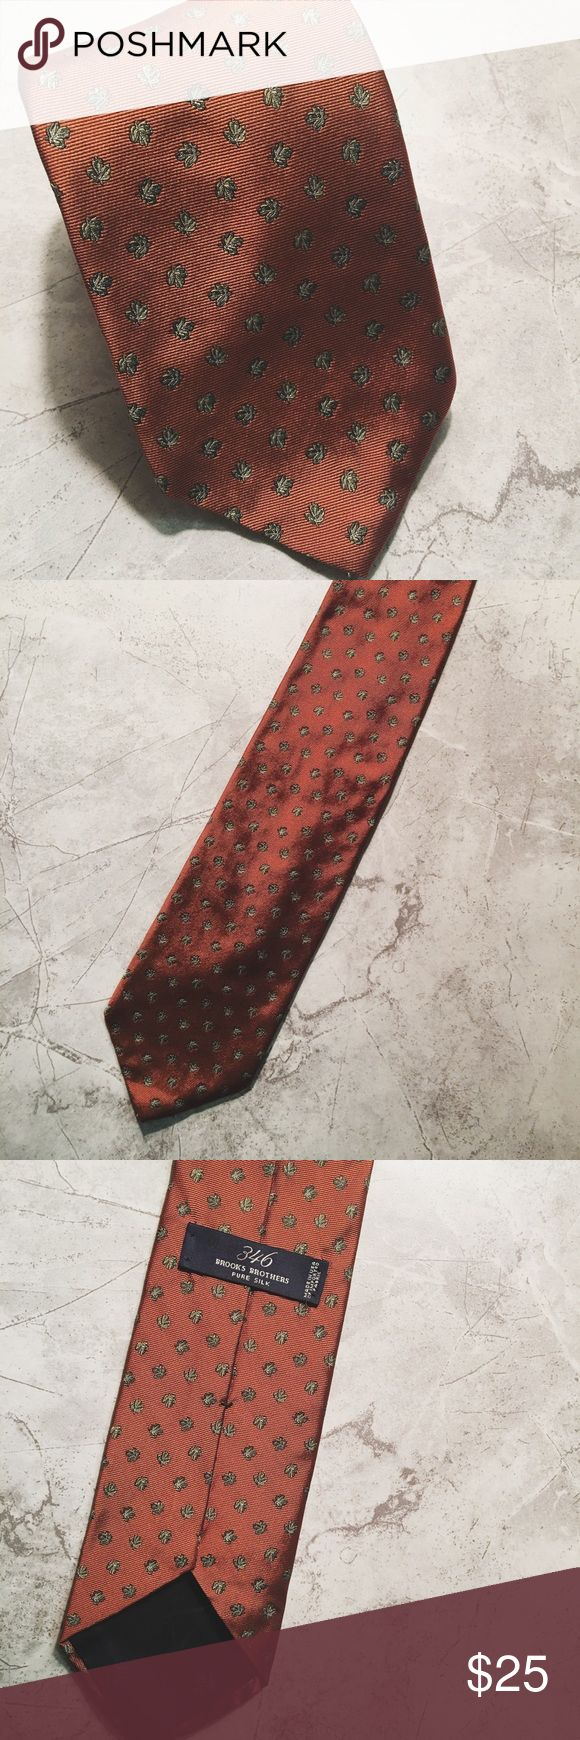 Brookes Brothers Tie Perfect condition Brooks Brothers Accessories Ties